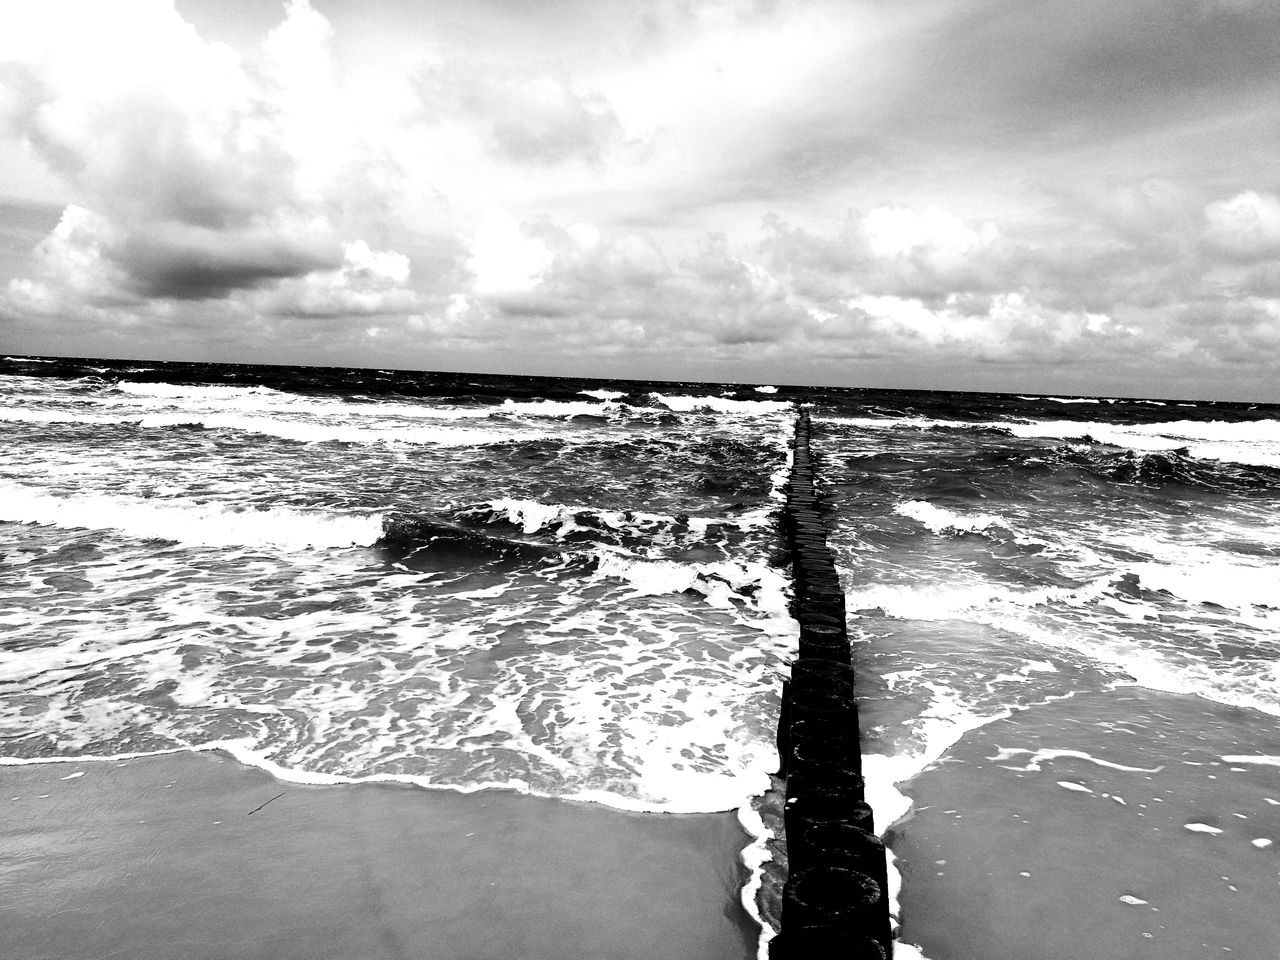 sea, water, nature, beauty in nature, wave, scenics, sky, tranquility, tranquil scene, no people, cloud - sky, outdoors, day, horizon over water, motion, beach, power in nature